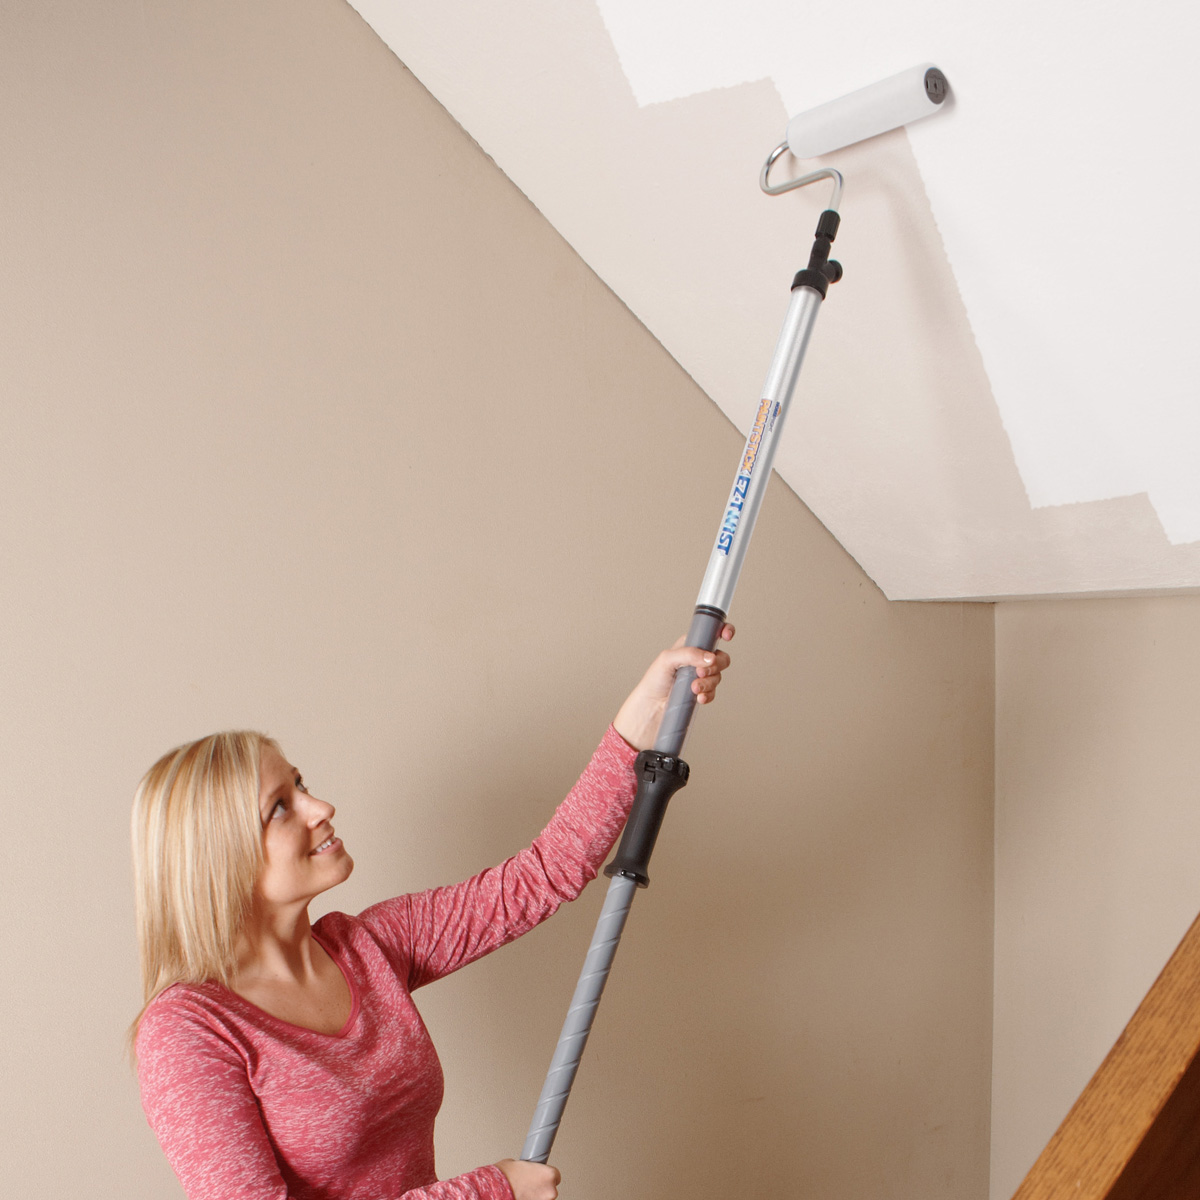 a woman holding a roller extension while she paints the ceiling beige